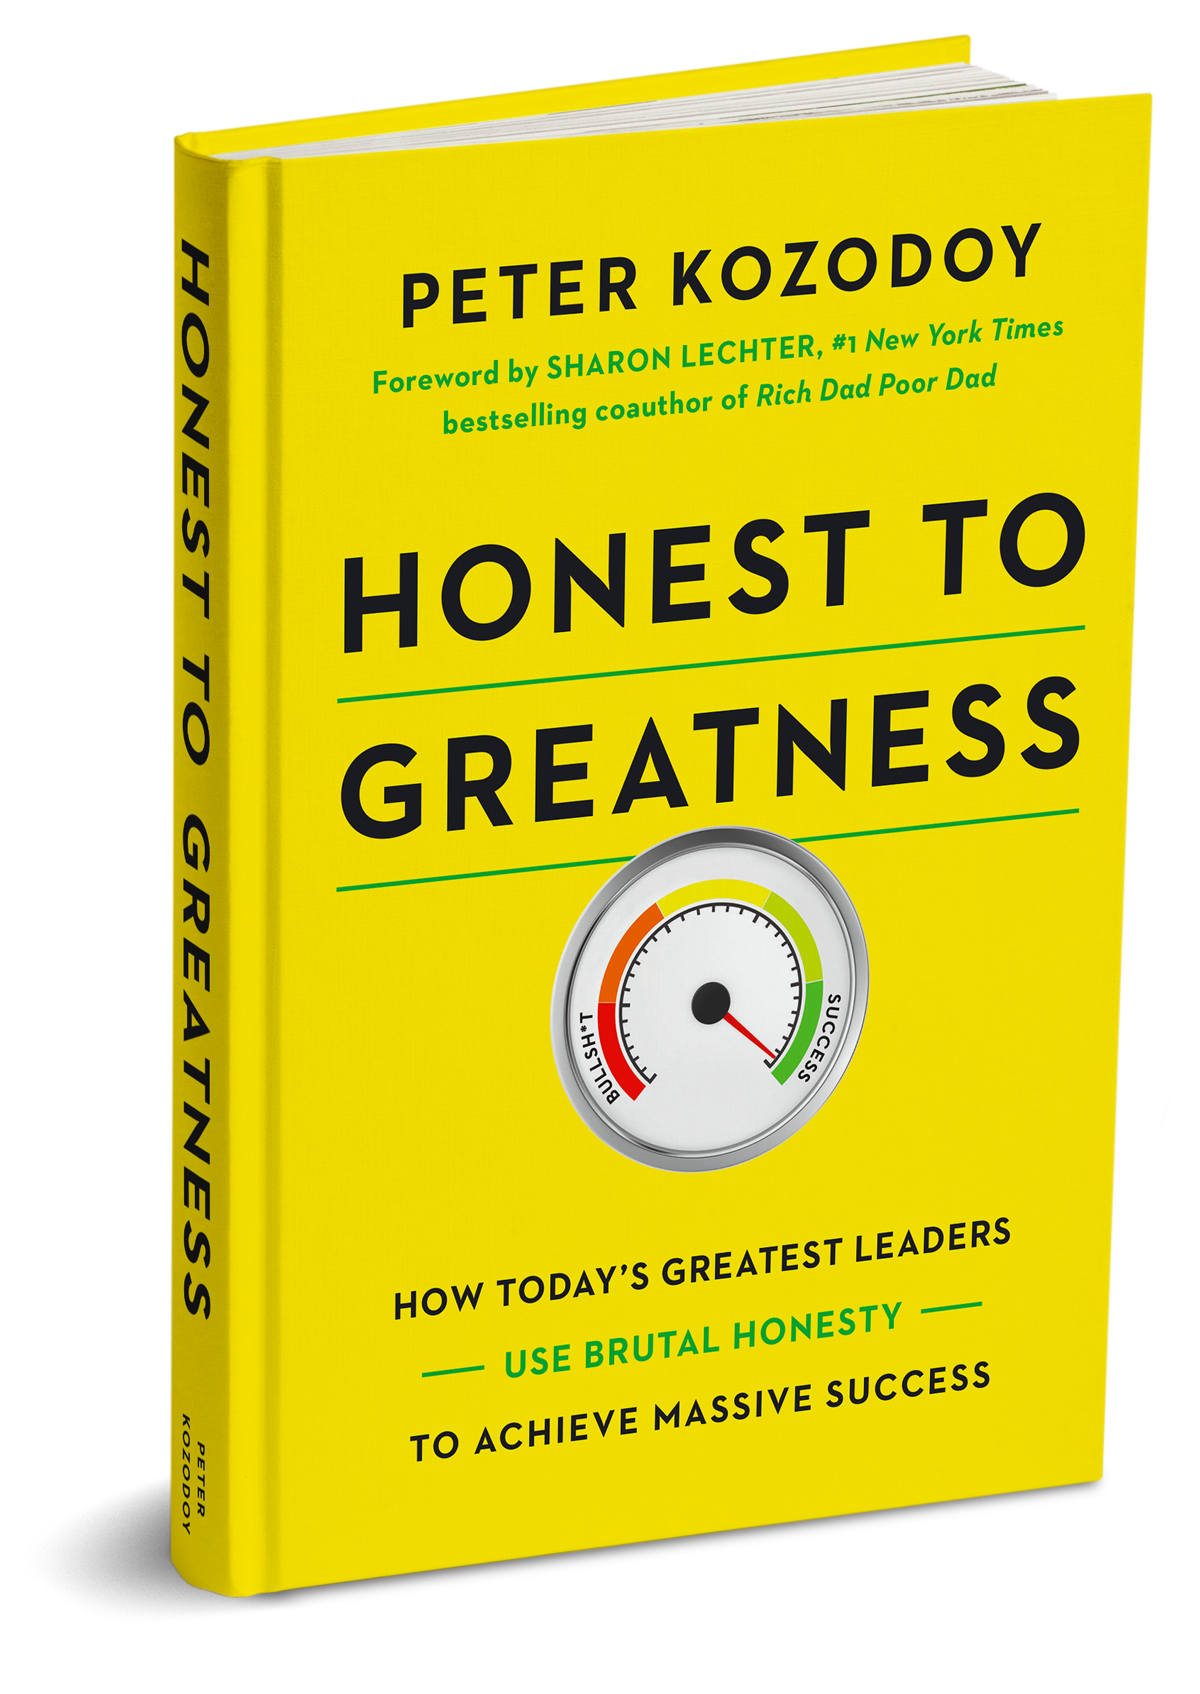 Honest to Greatness, the book, with foreword by #1 New York Times bestselling author Sharon Lechter